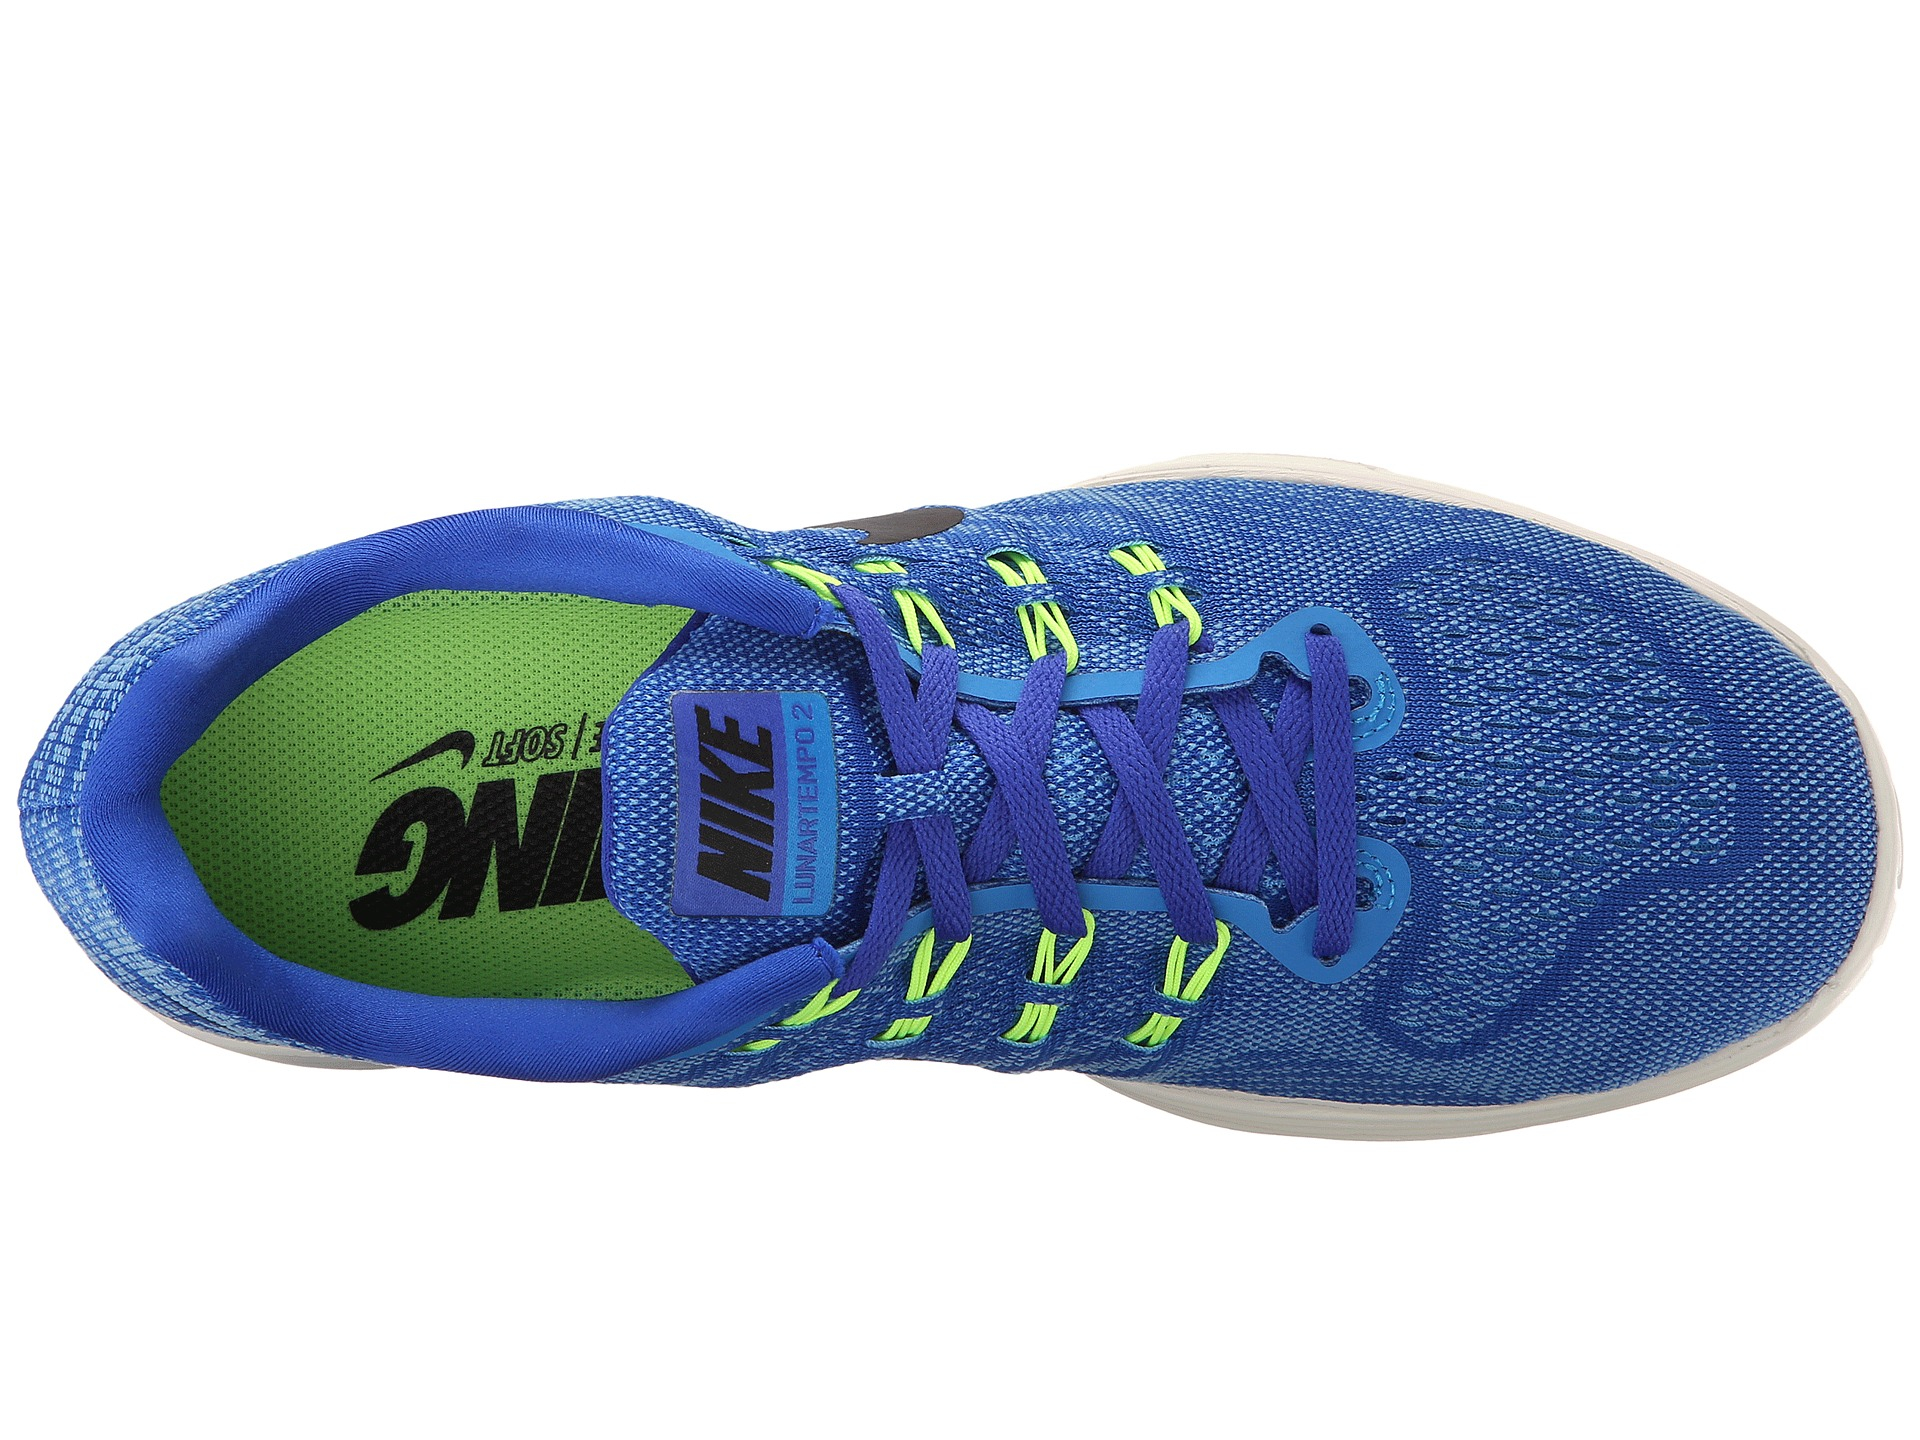 9a271609ff9 ... purchase lyst nike lunartempo 2 in blue for men bdc53 068bf